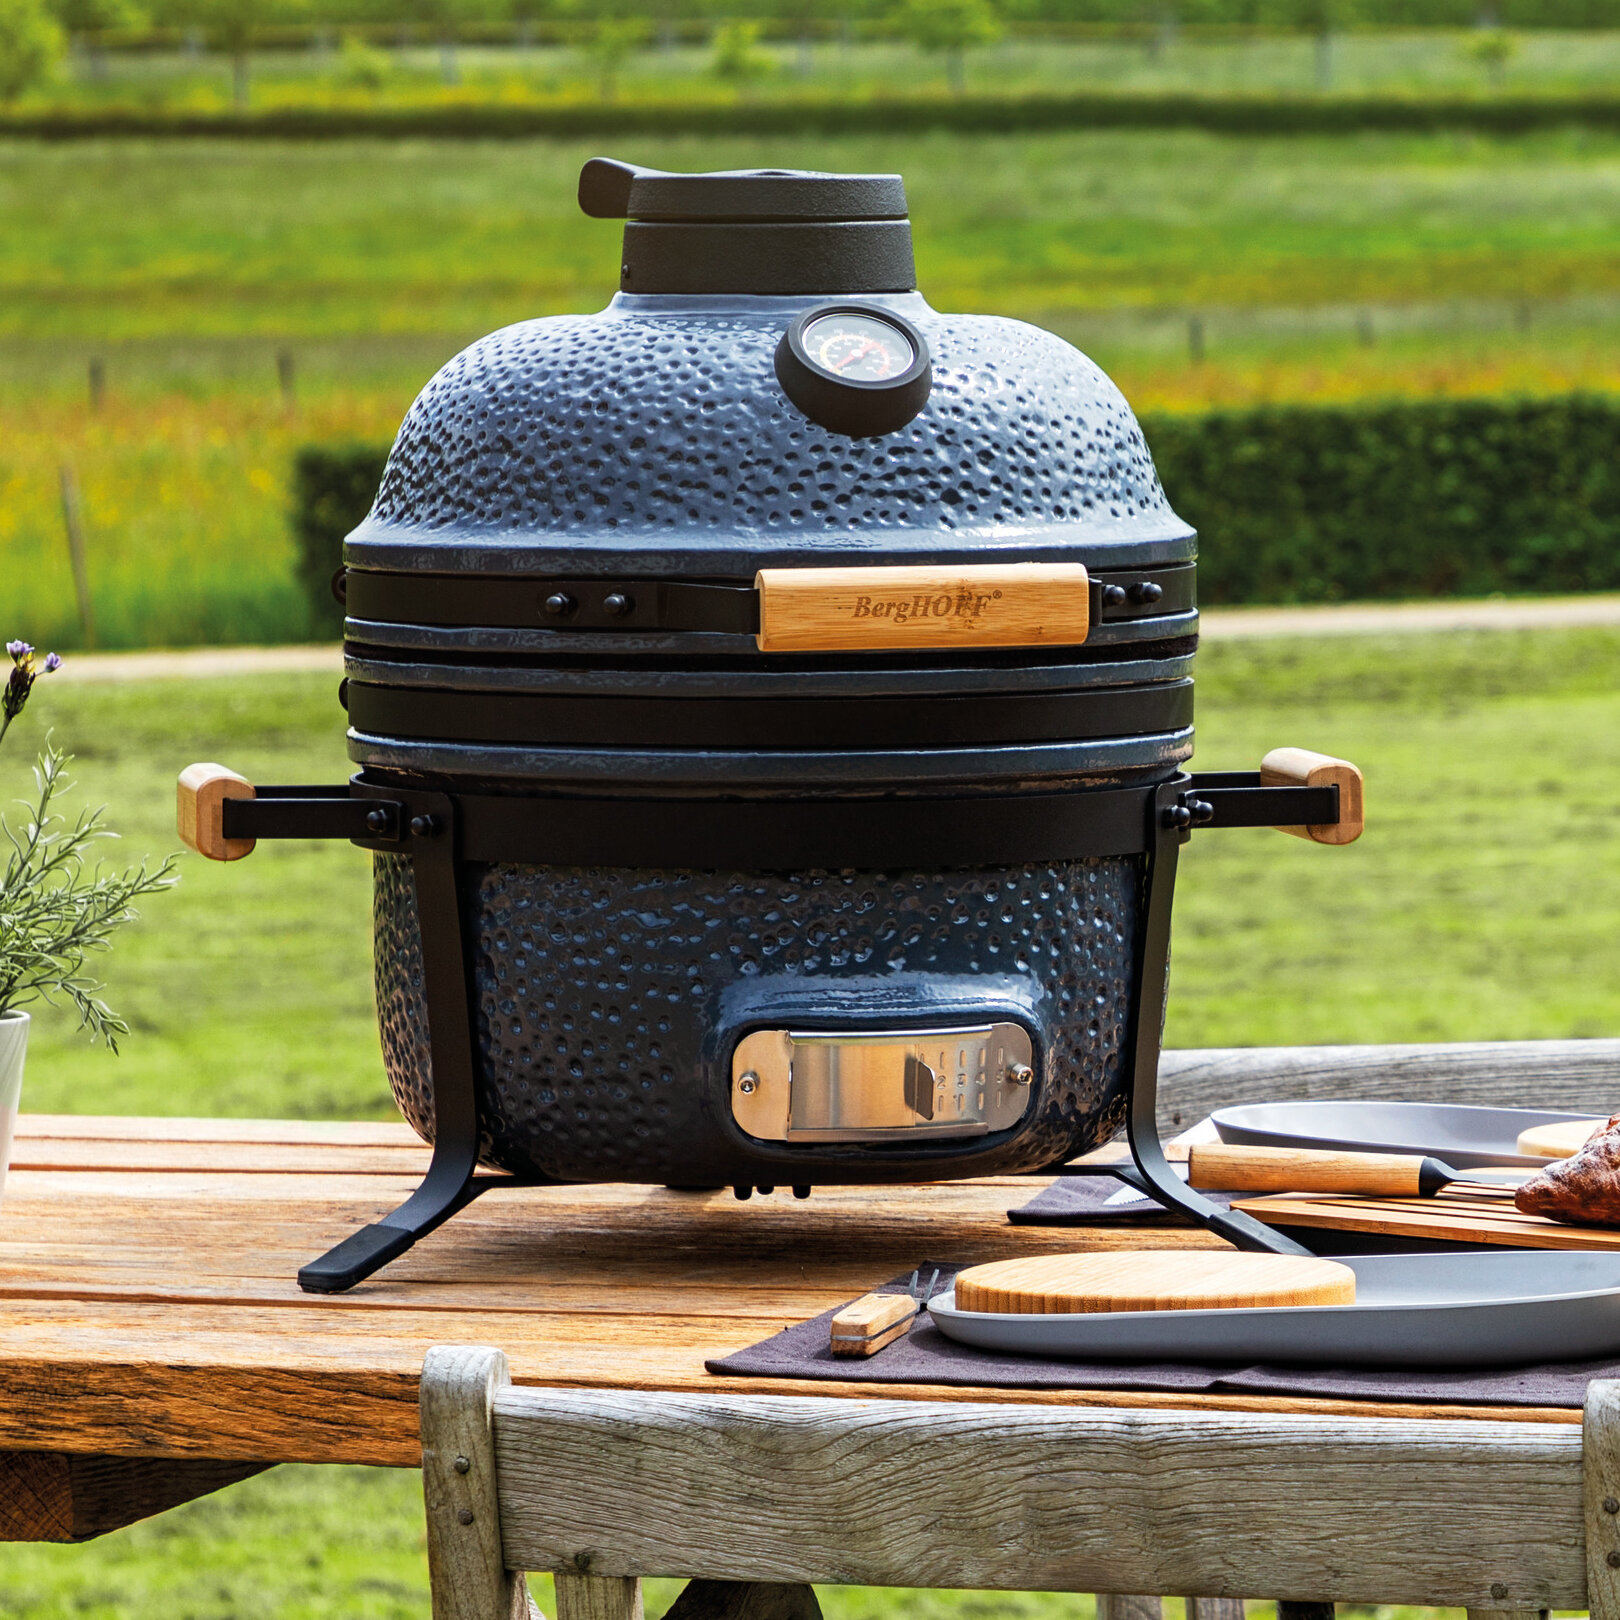 Berghoff International 16 Kamado Charcoal Grill Wayfair